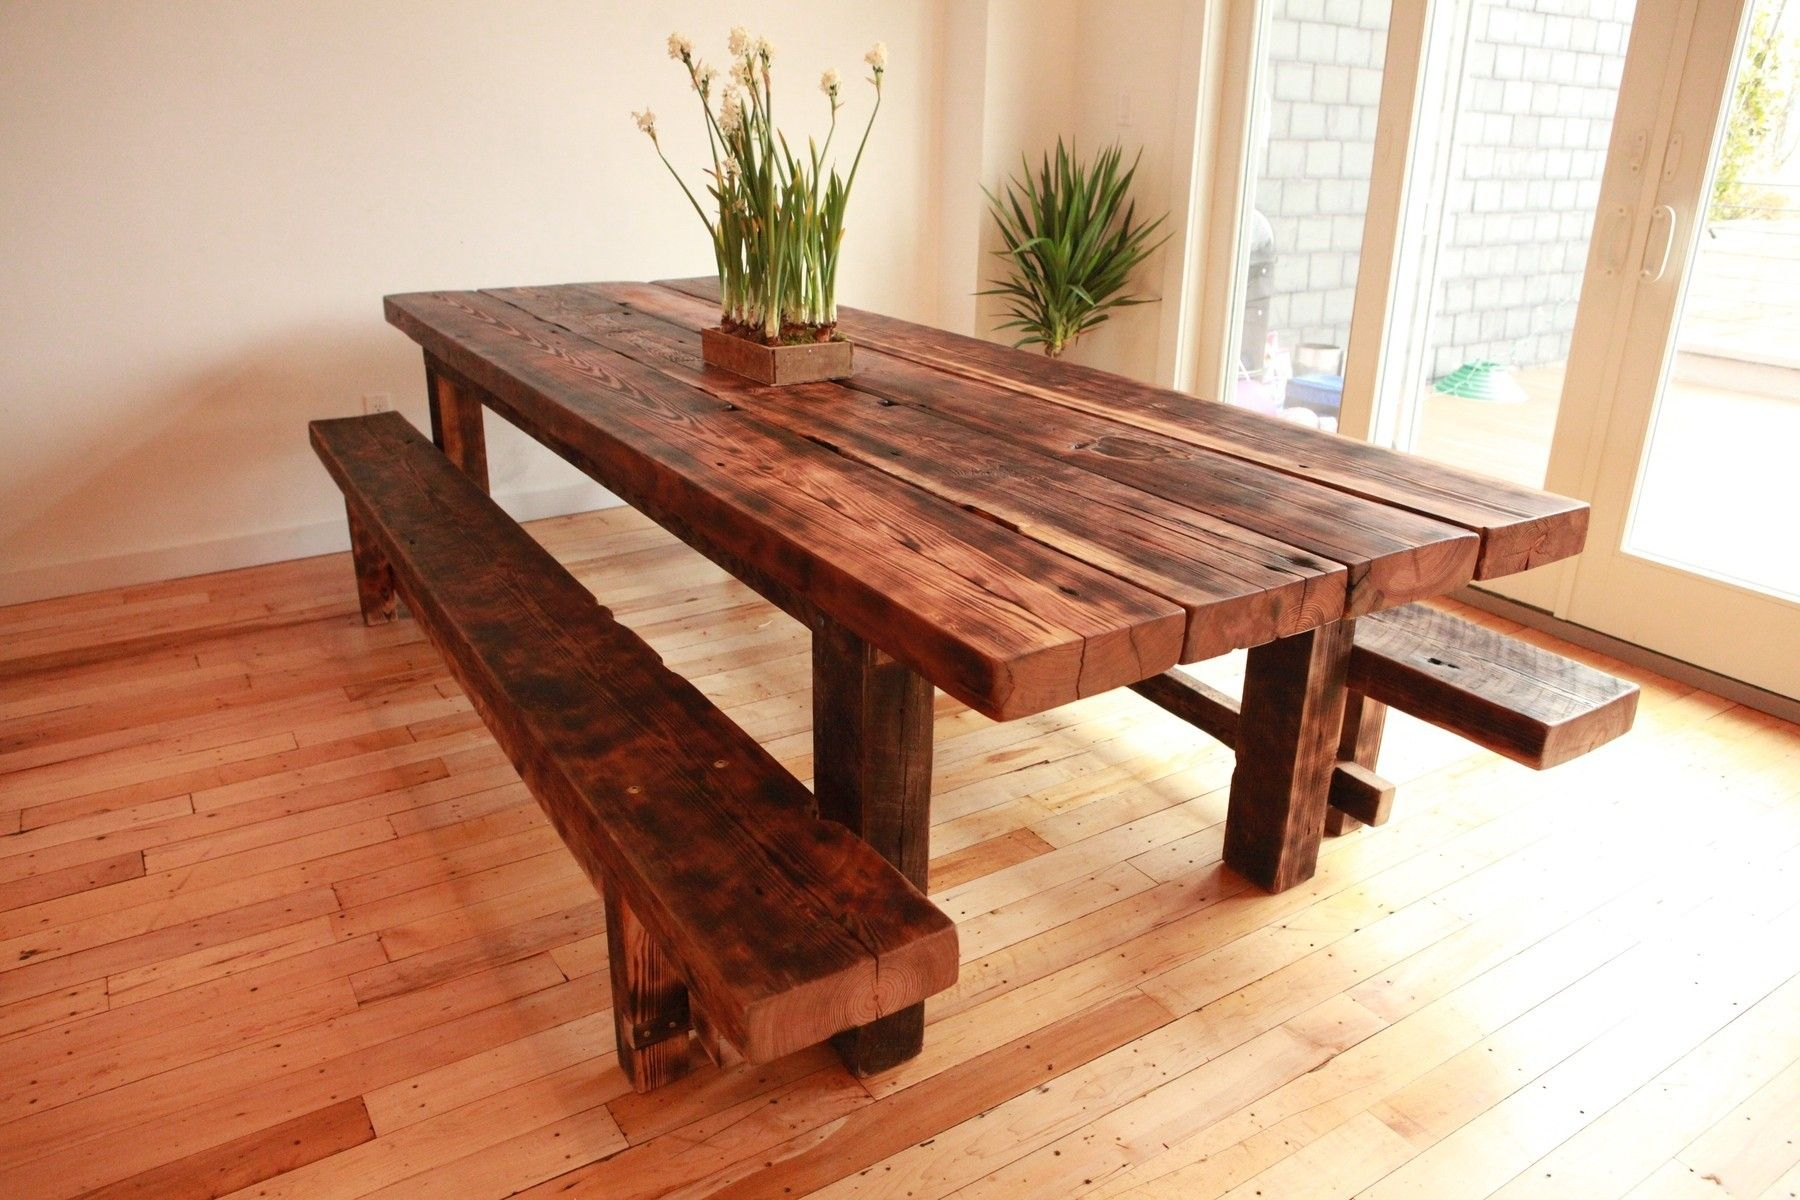 square furniture dining room varnished iron wood long dining table added double bench placed on overlay - All Wood Dining Room Table